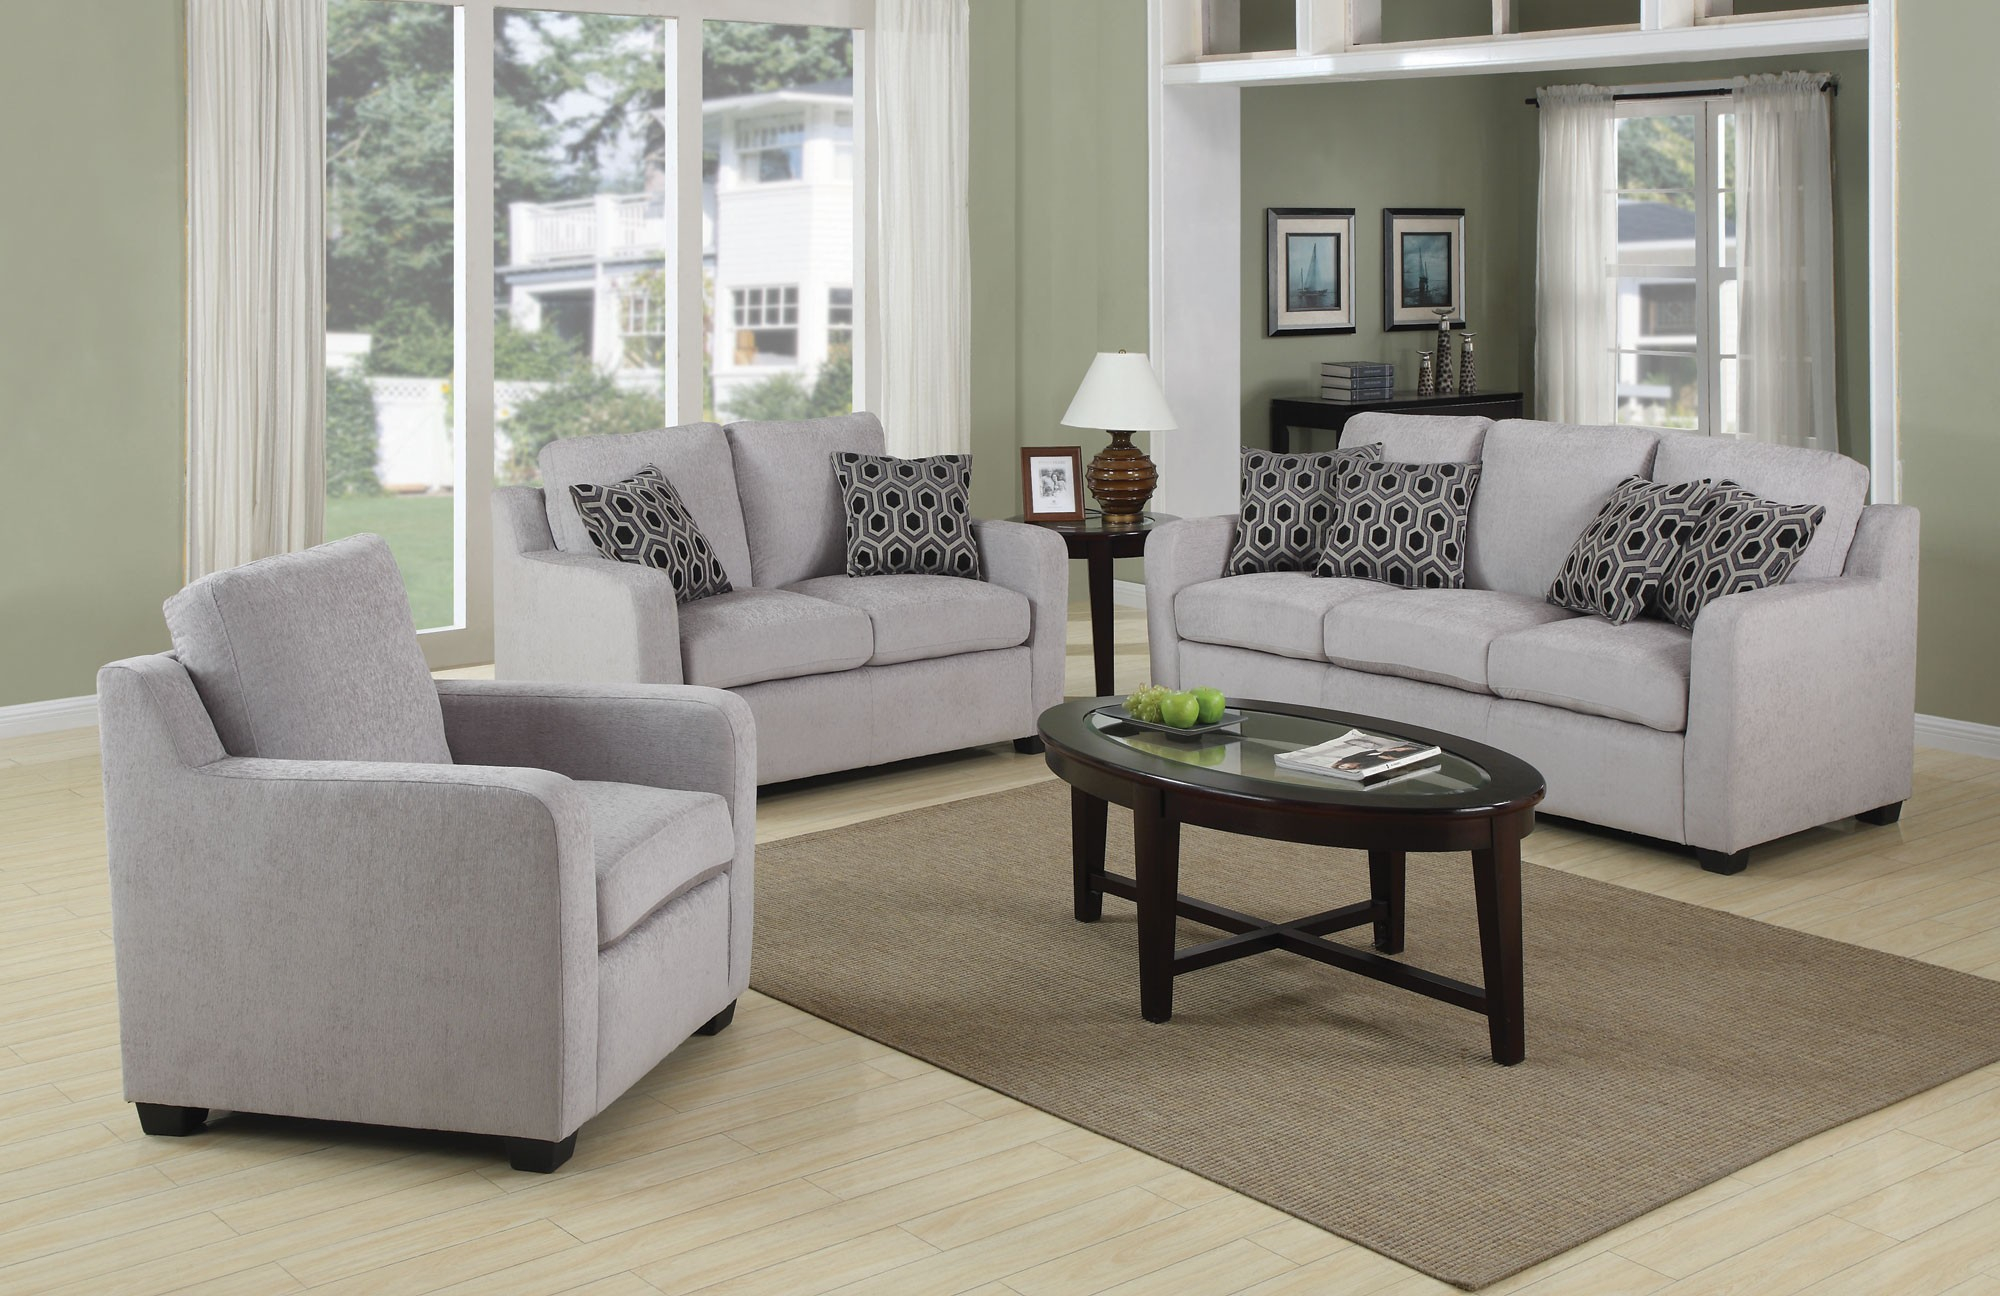 Cheap Living Room Sets Under 200 Living Room Design 2018 pertaining to Discounted Living Room Sets